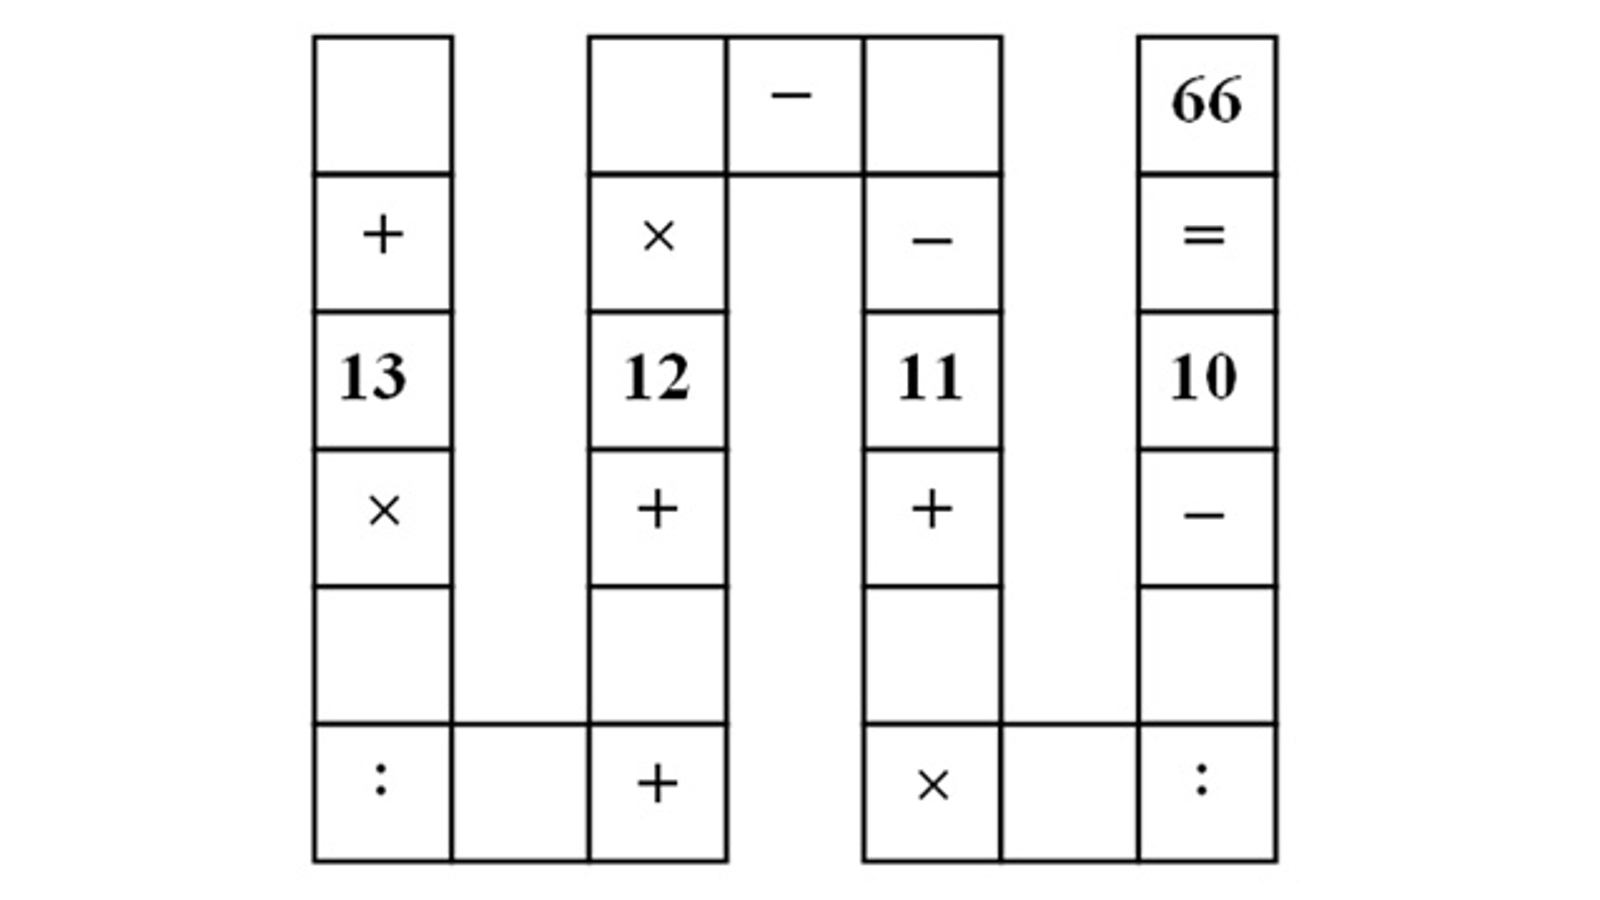 Can You Solve This Vietnamese Math Puzzle For 8 Year Olds